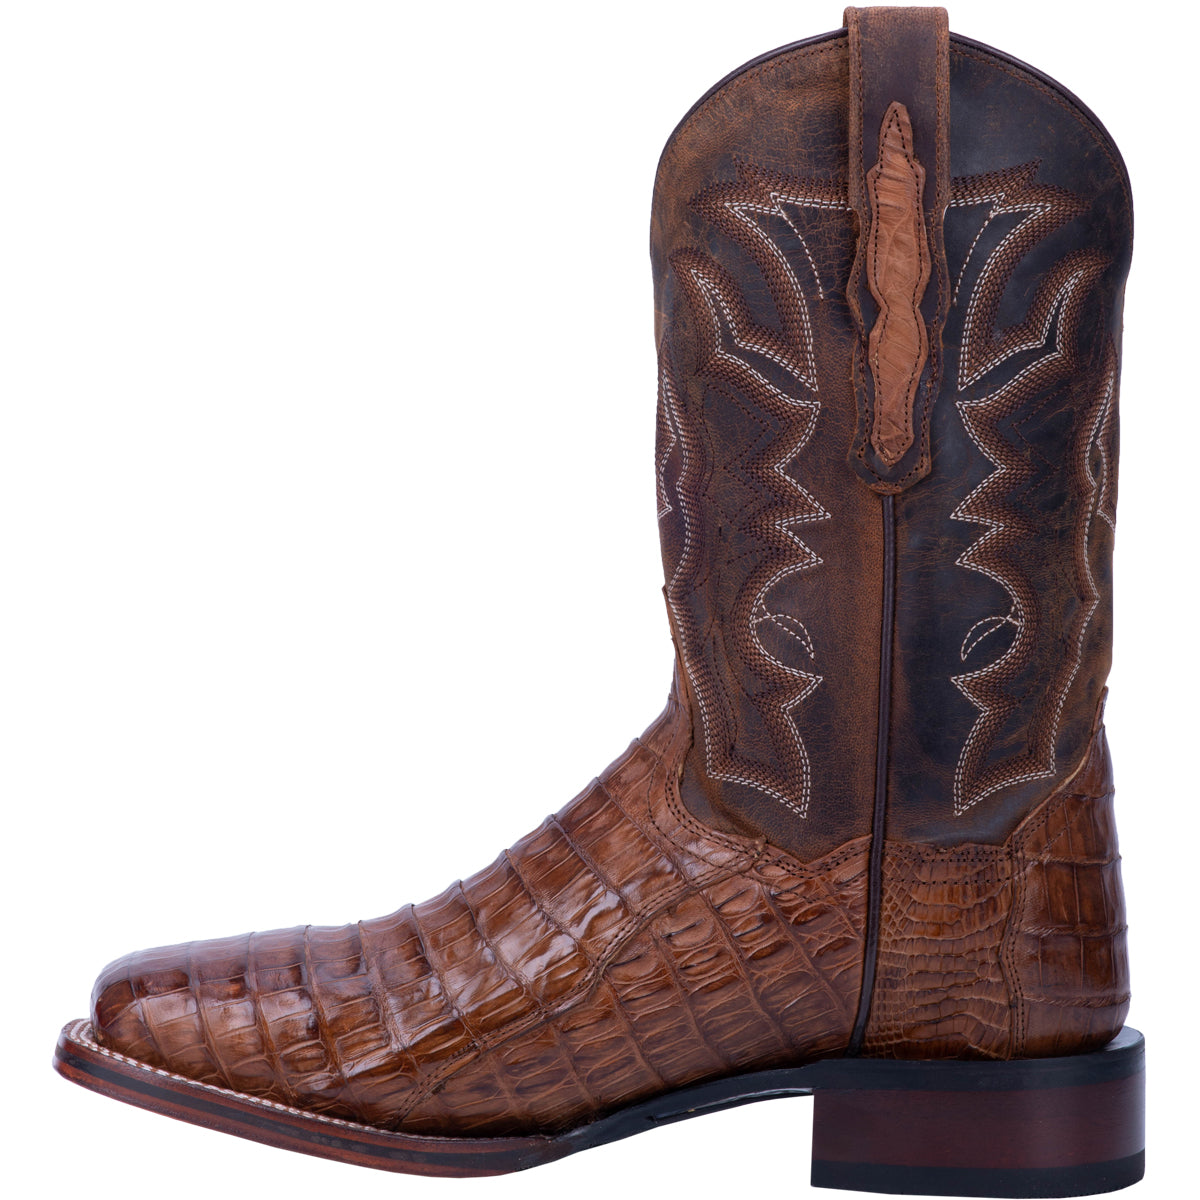 KINGSLY CAIMAN BOOT 5547776737322